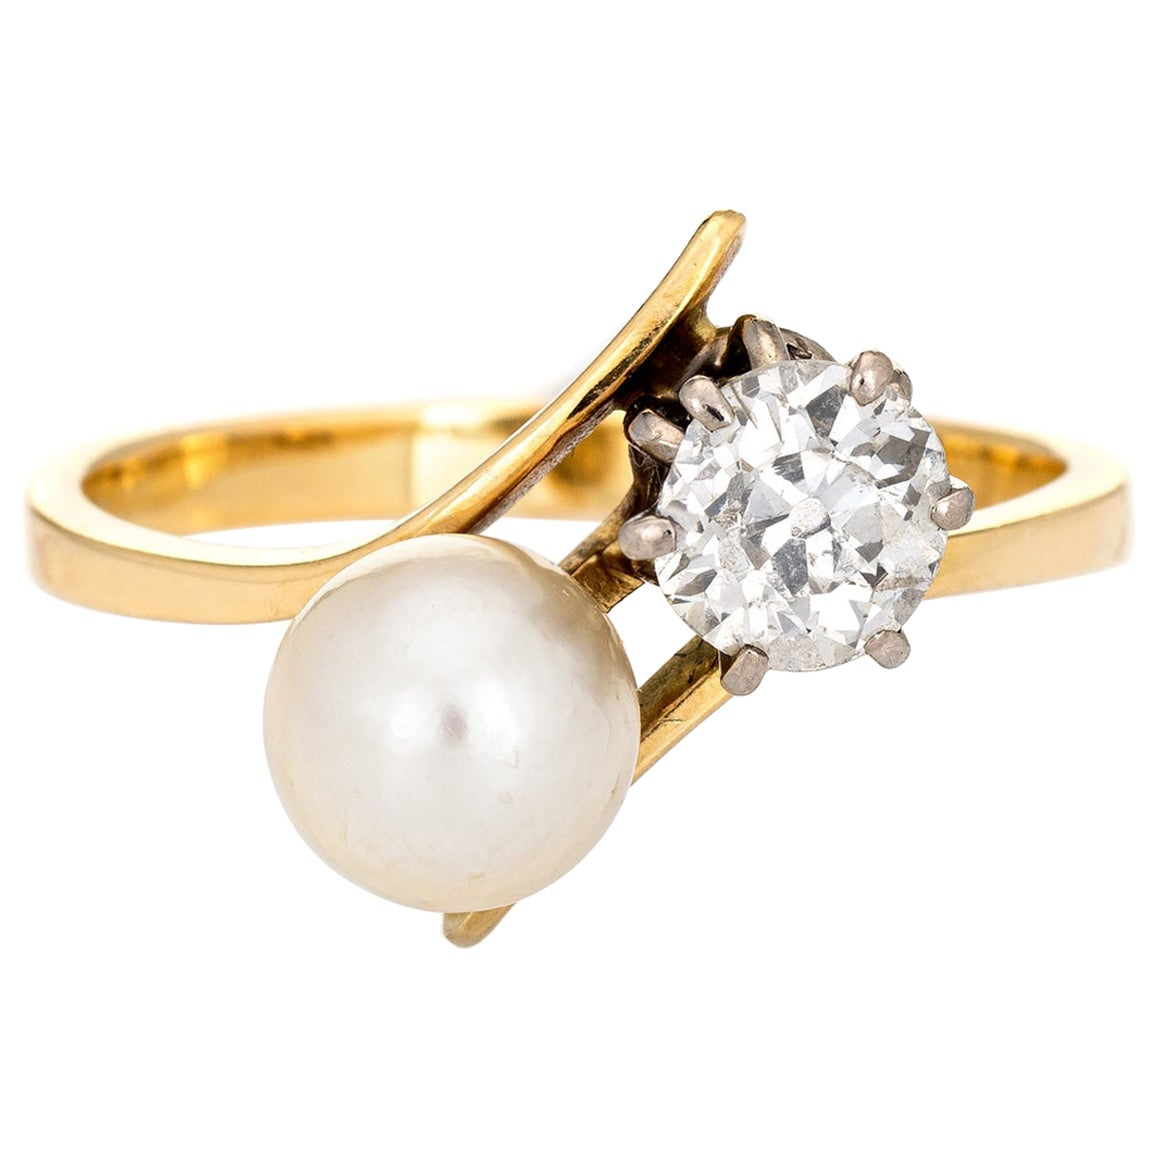 Antique Edwardian Ring Pearl 0.75 Carat Old Mine Diamond Moi et Toi 14k Gold